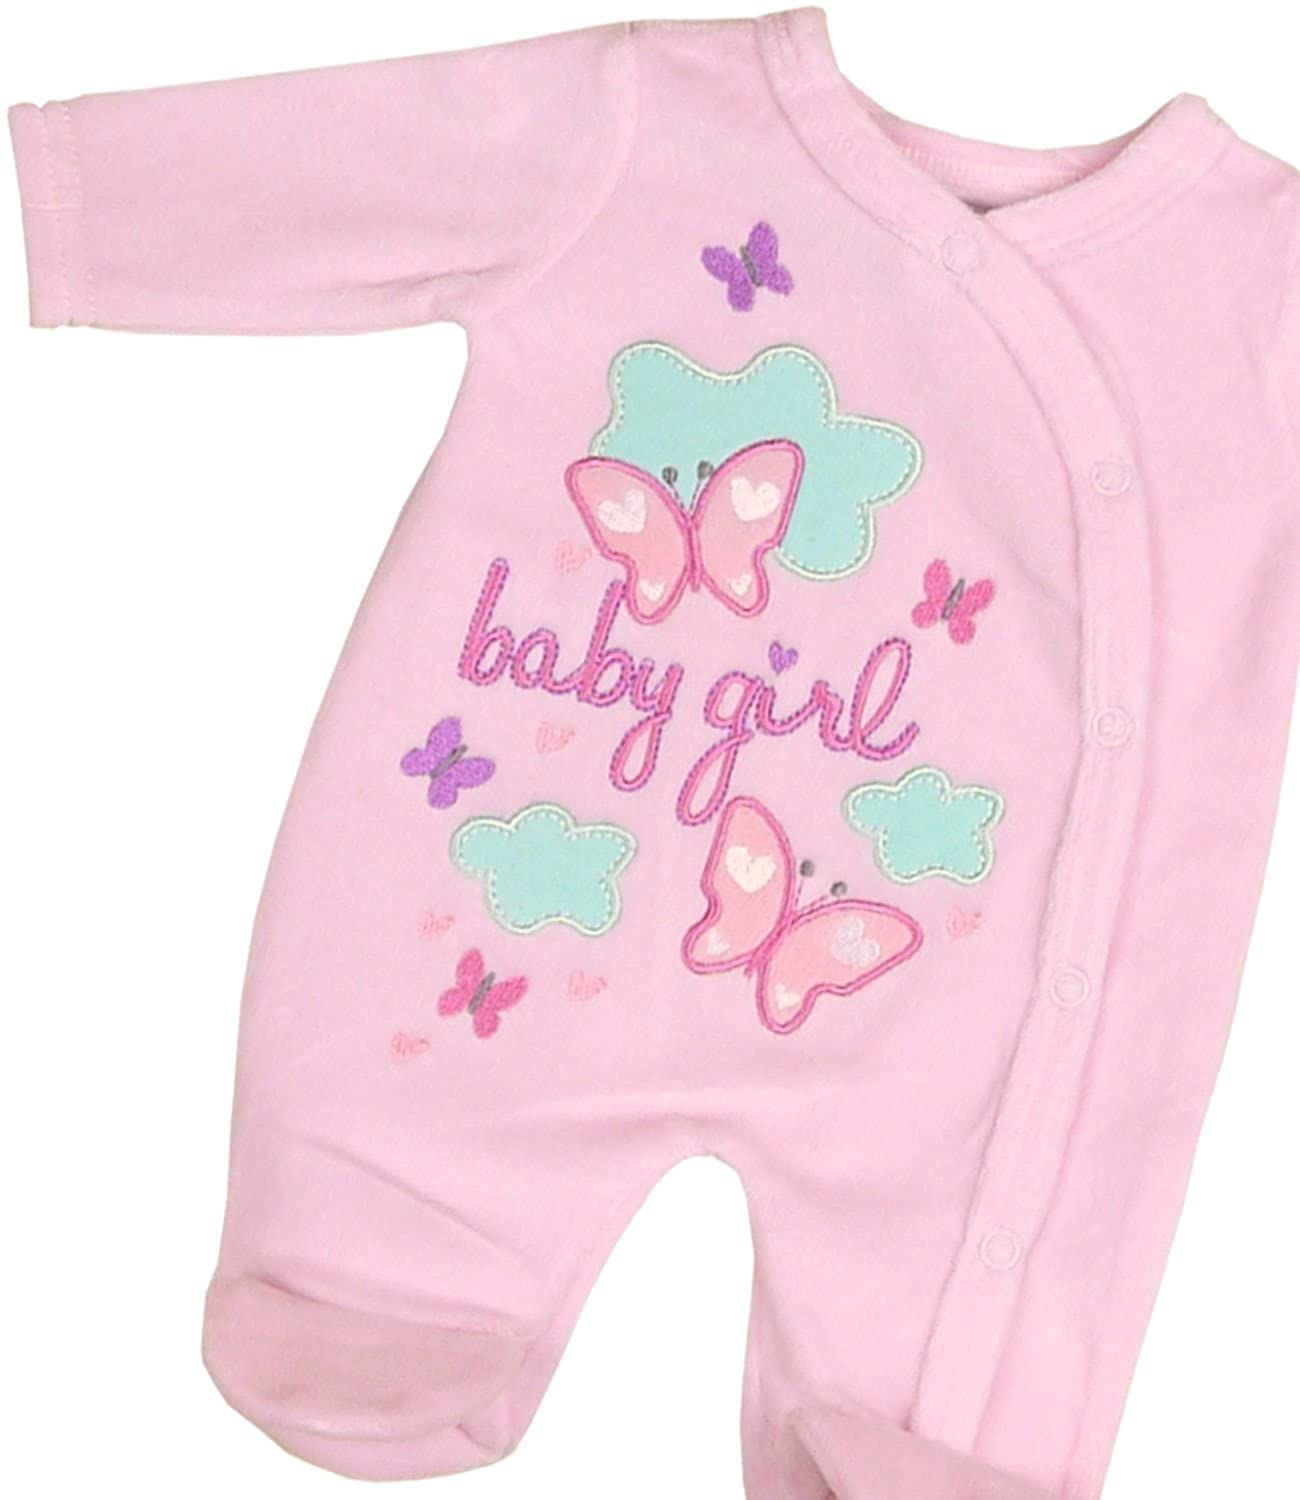 BabyPrem Preemie Tiny Footie Baby Boy Girl Pink Blue Cotton Velour Clothes SLD130